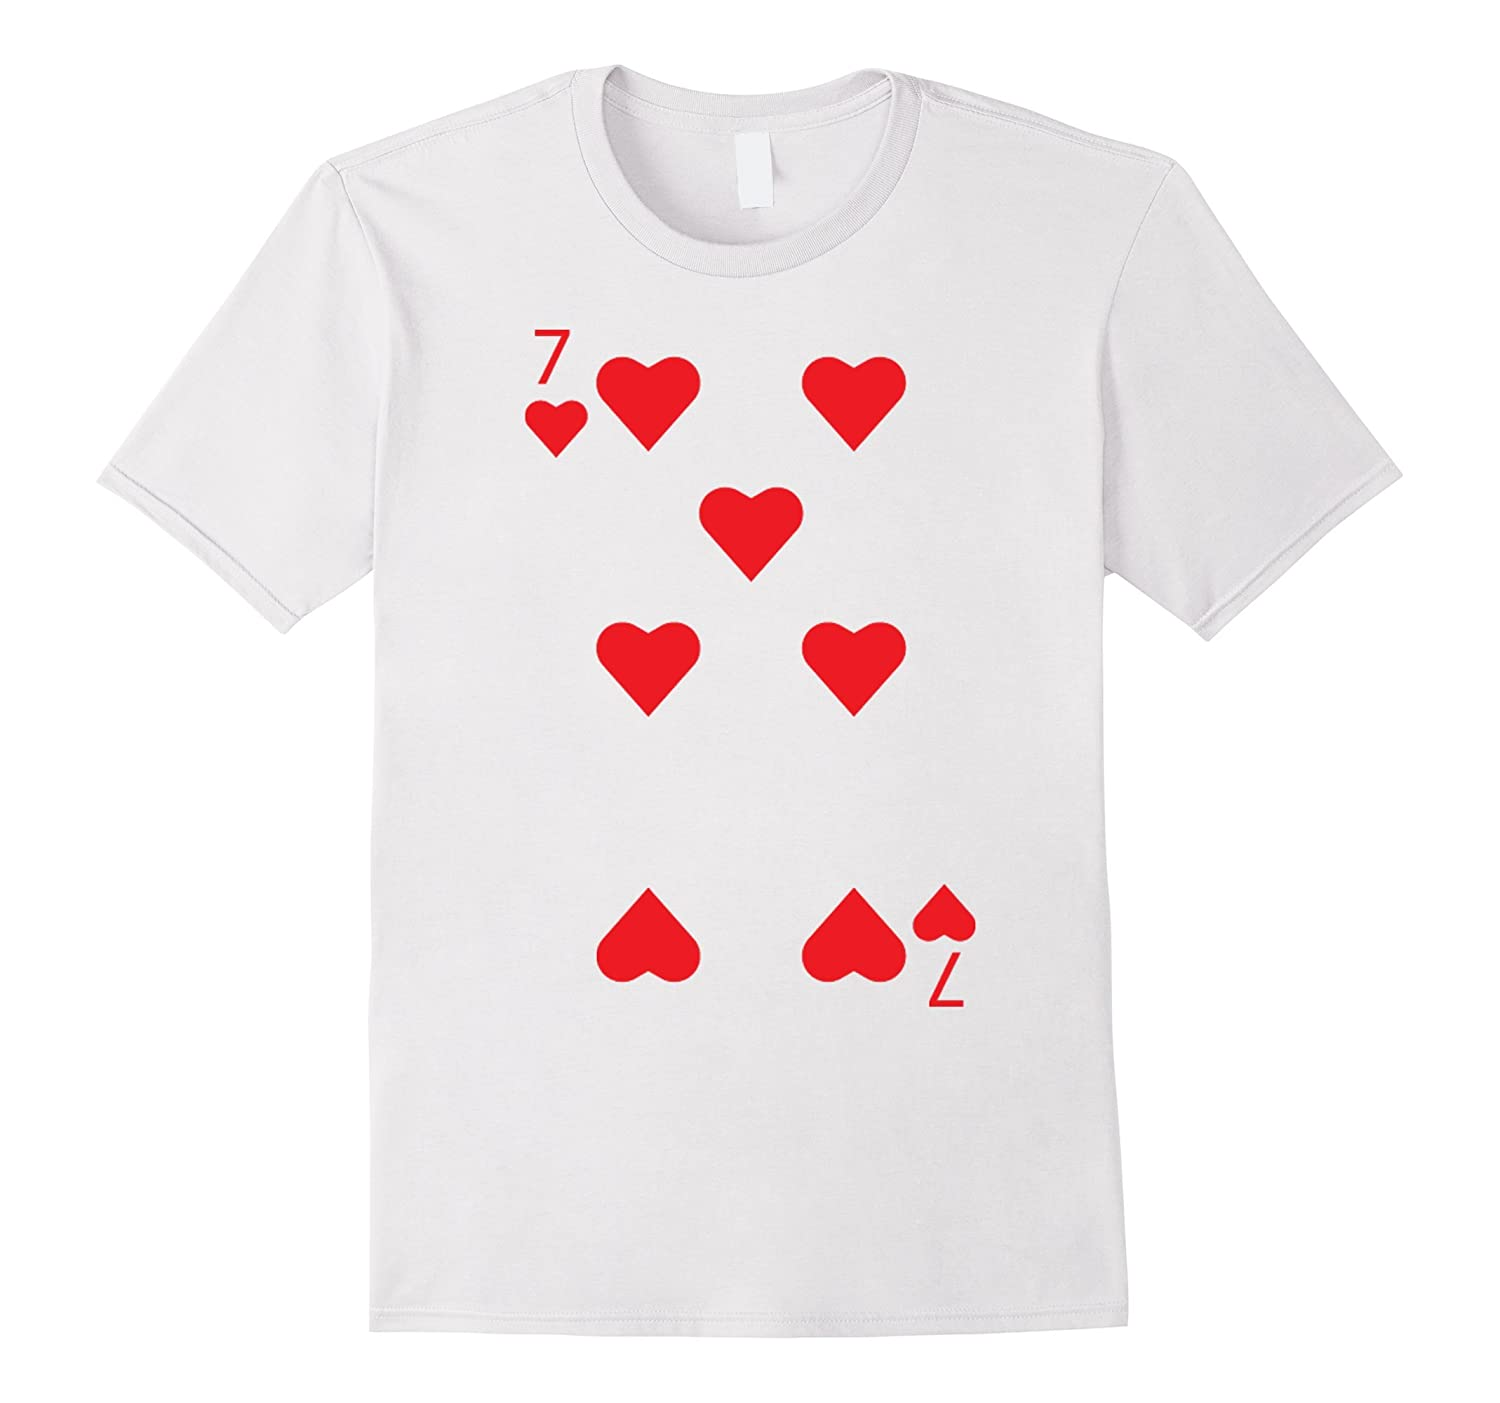 7 of Hearts Playing Card Matching Halloween Costume T-shirt-FL